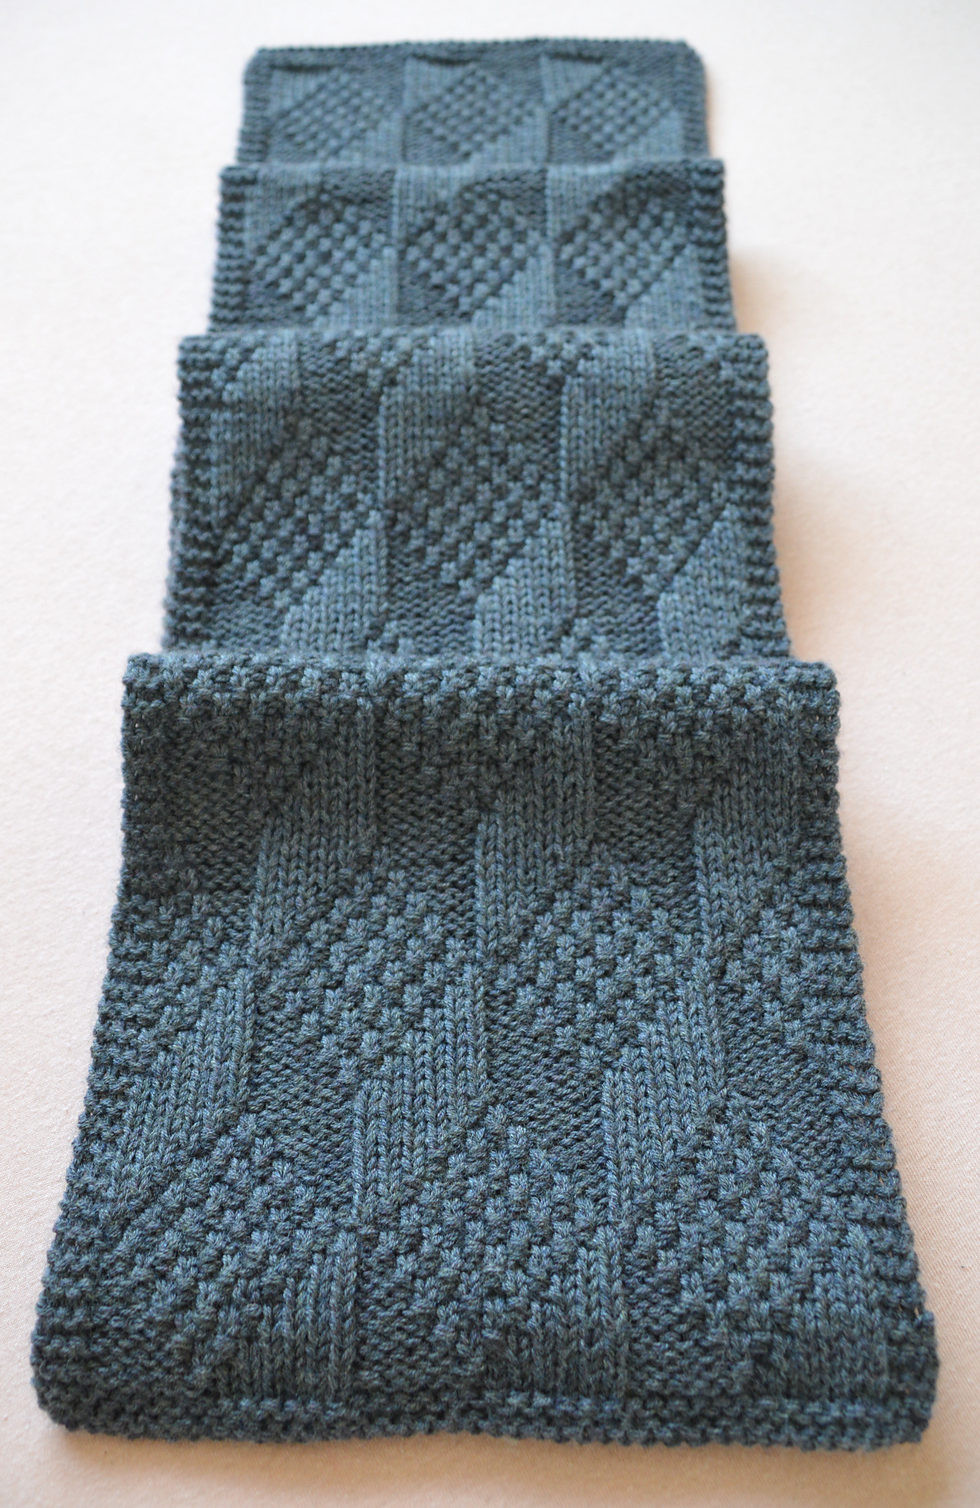 Free Scarf Knitting Patterns Lovely Reversible Scarf Knitting Patterns Of Innovative 40 Pics Free Scarf Knitting Patterns